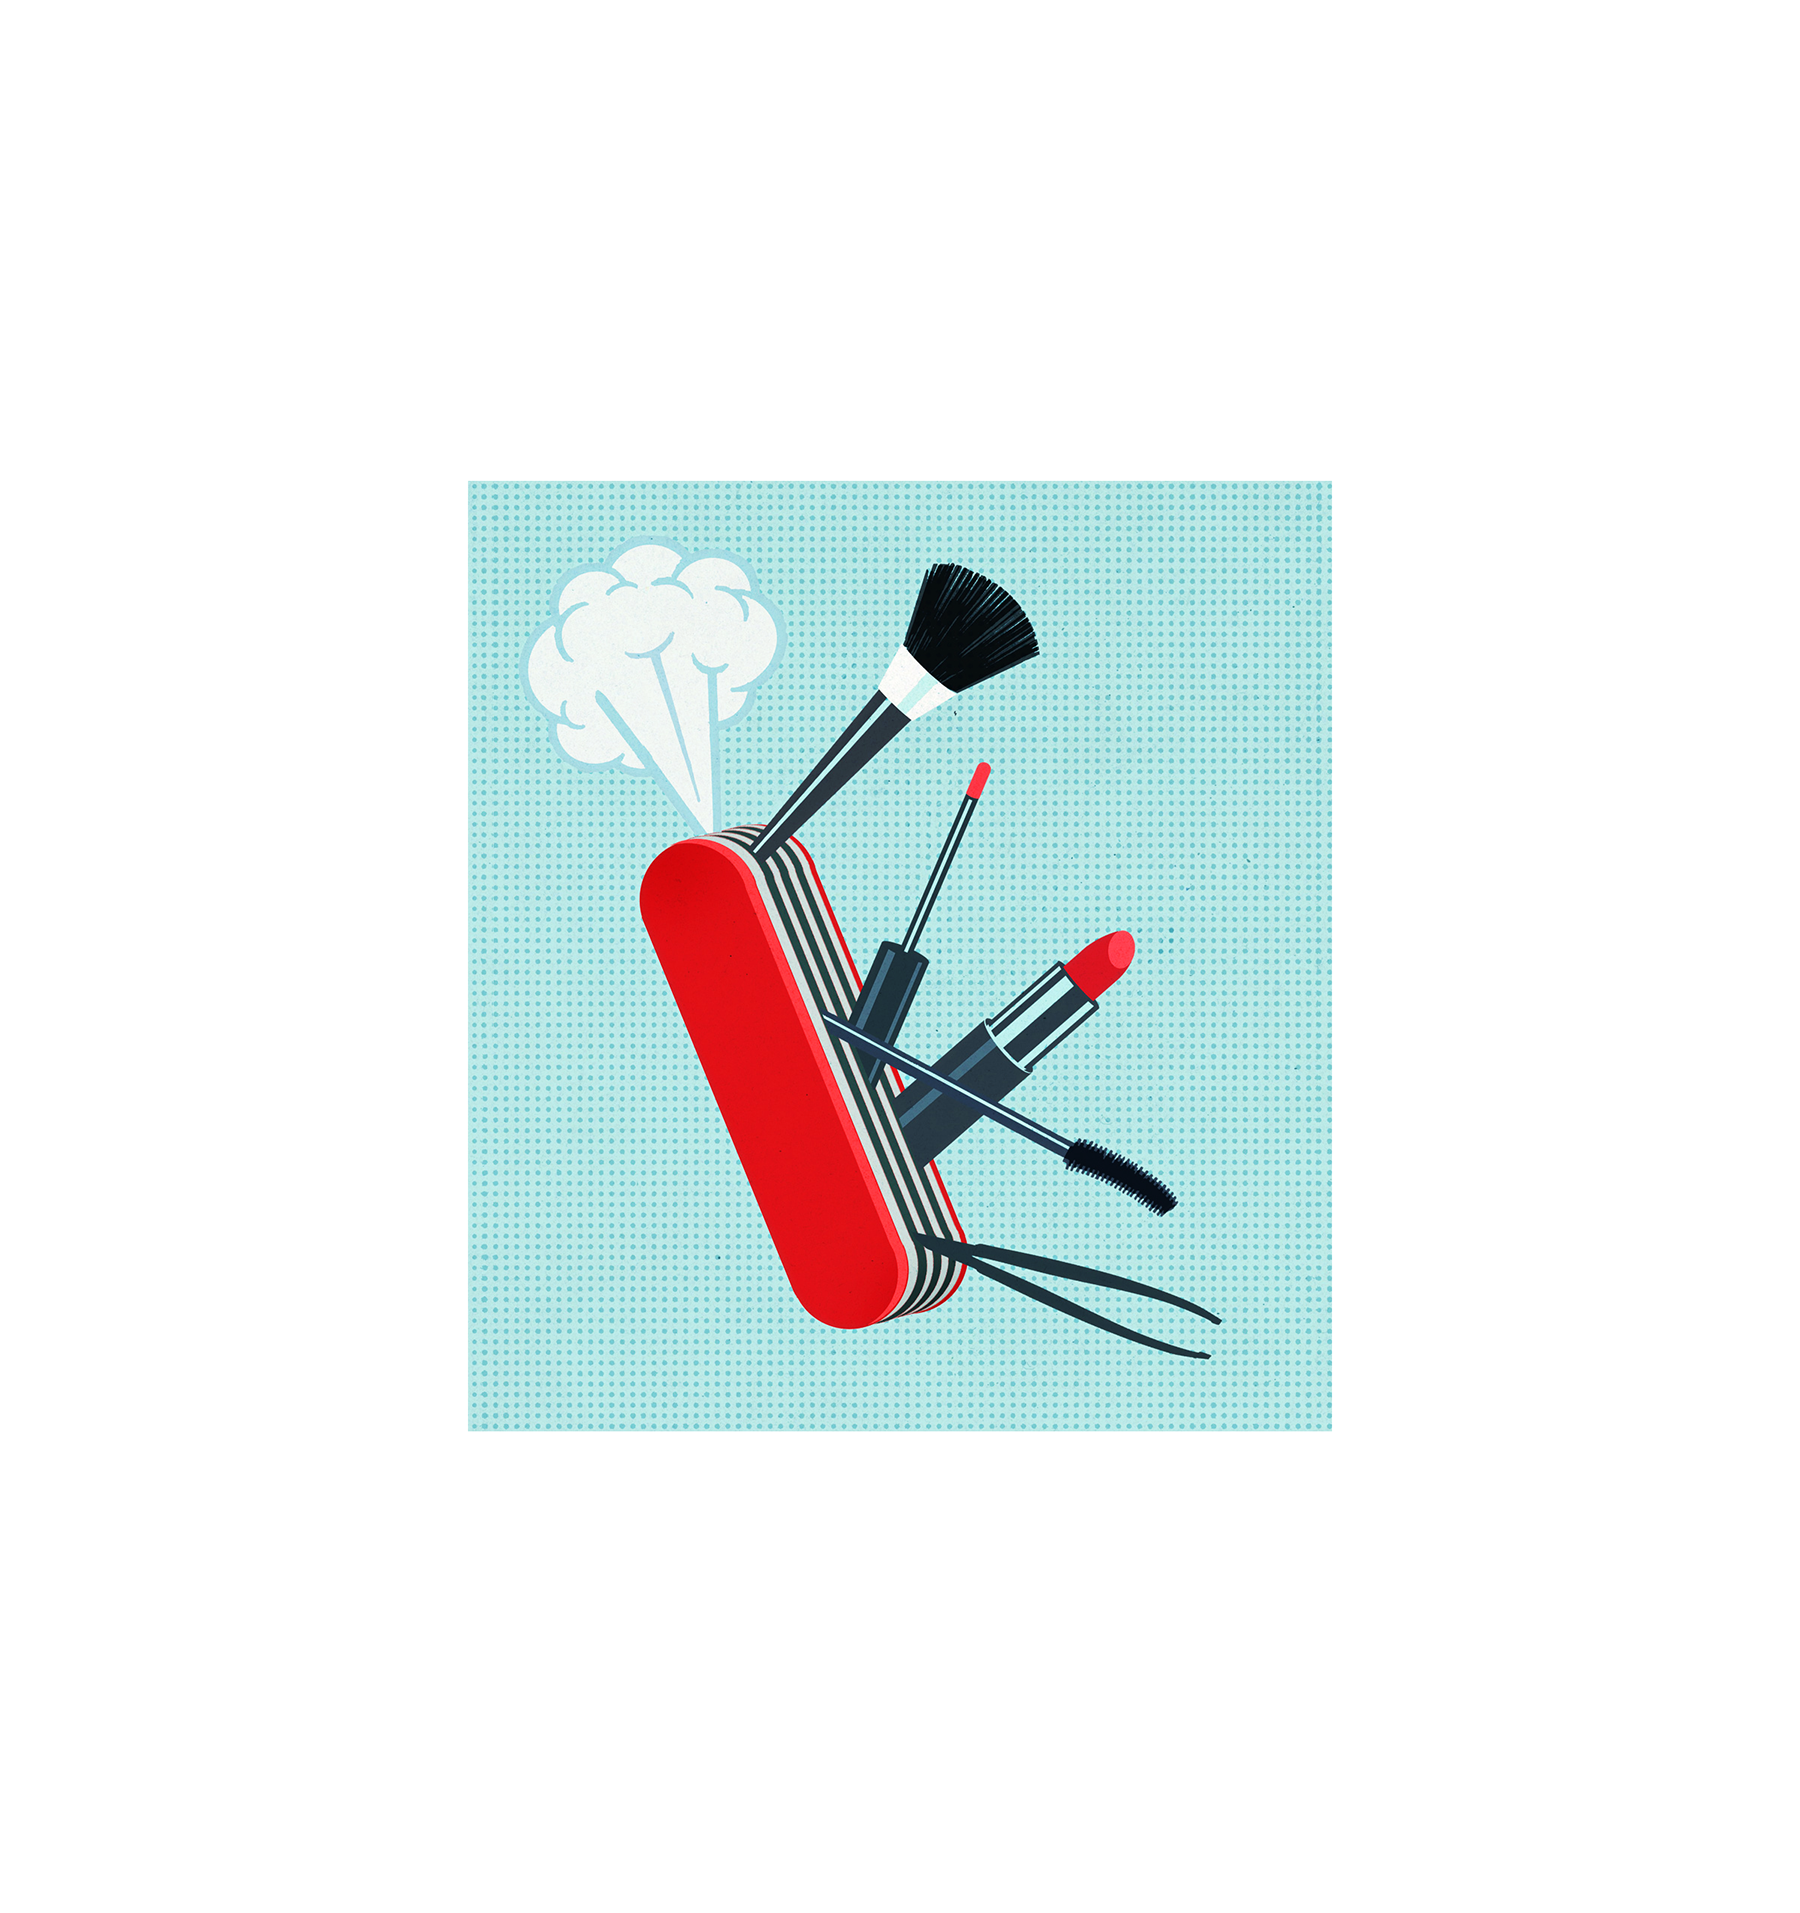 Illustration: Army knife with beauty tools